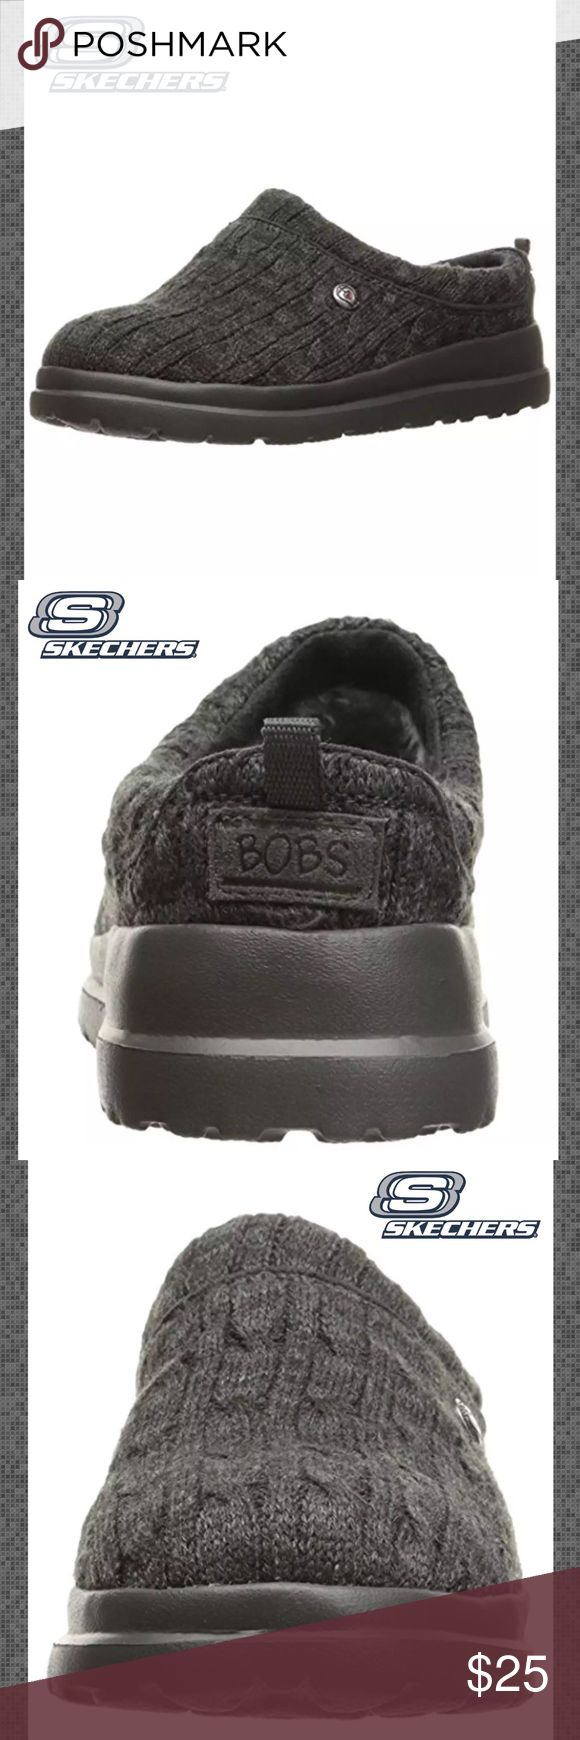 SKETCHERS 'Bobs' Gray Clog Slippers Please See Above Picture For Detailed Description Sketchers Shoes Slippers